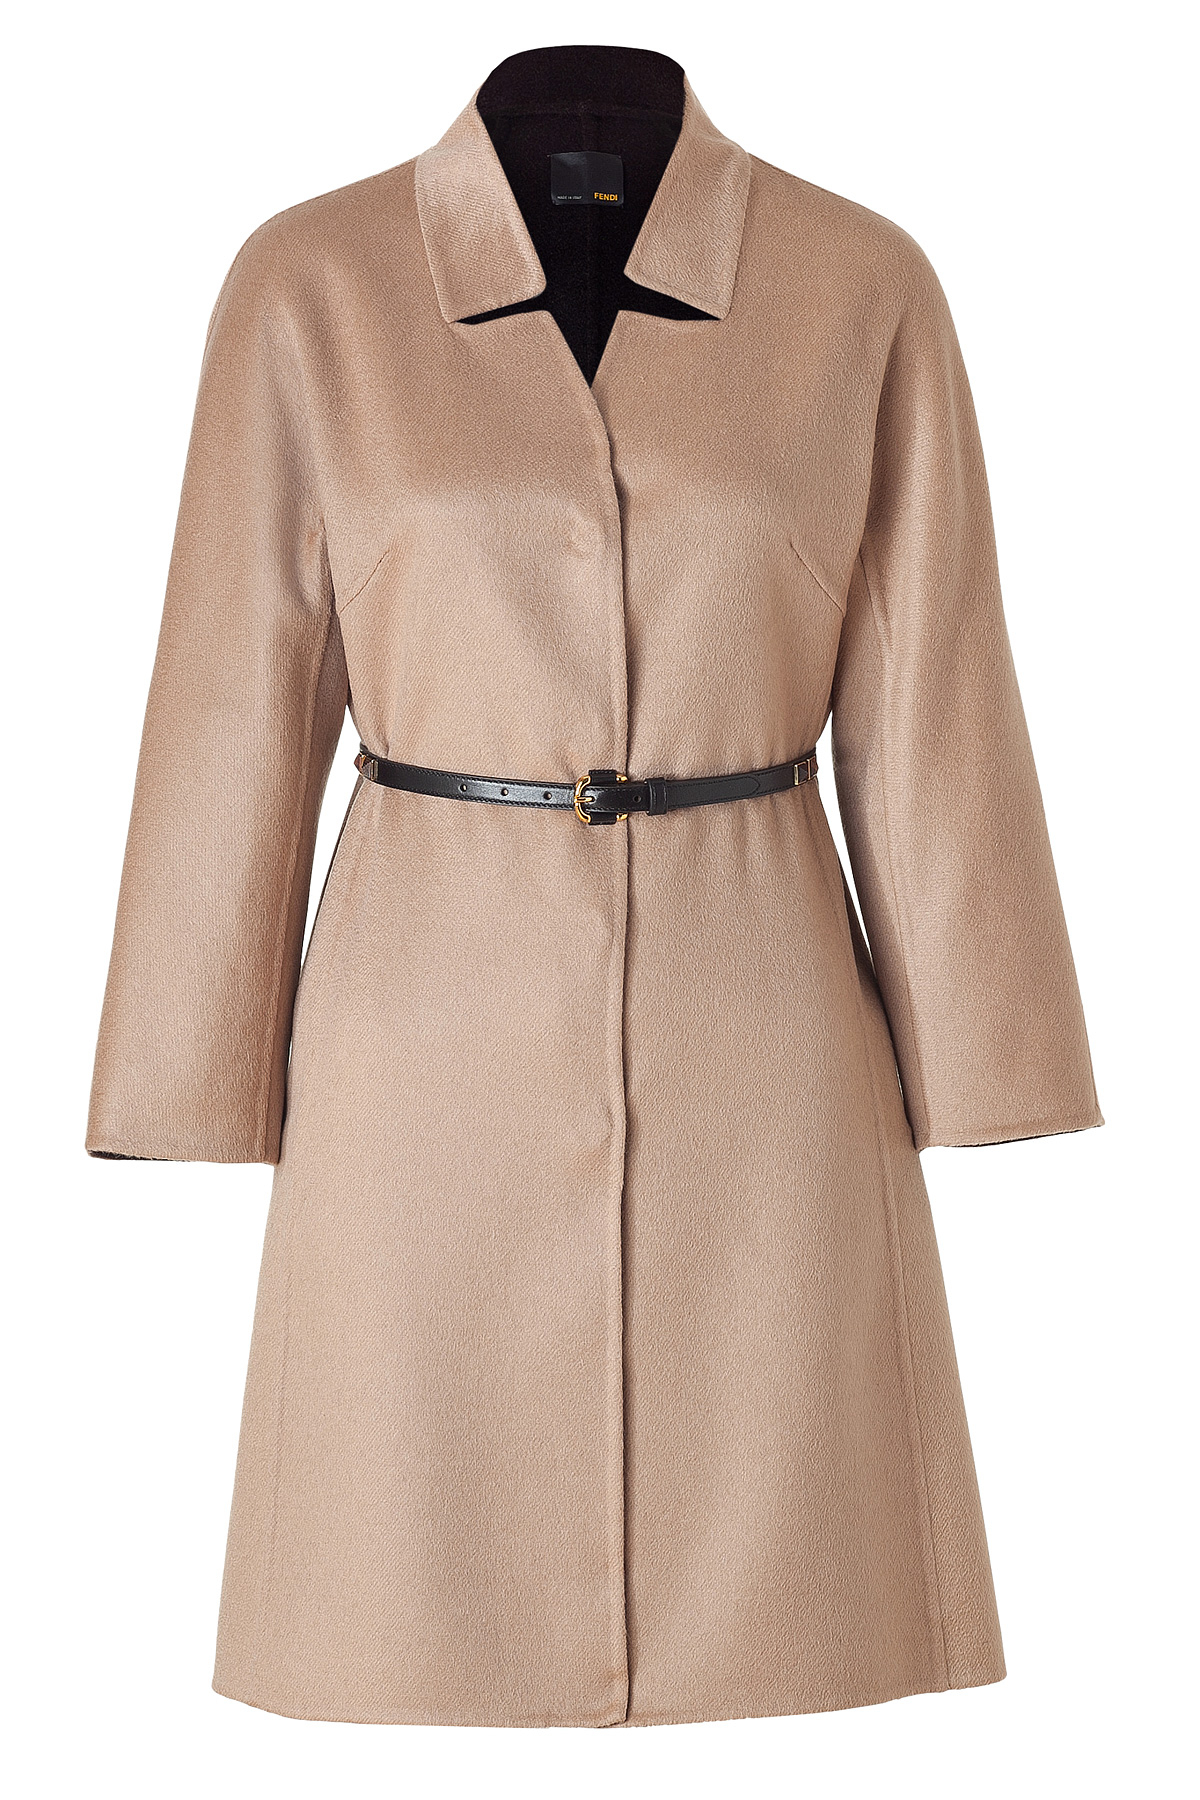 Fendi Camel Cashmere Coat With Studded Leather Belt in ...